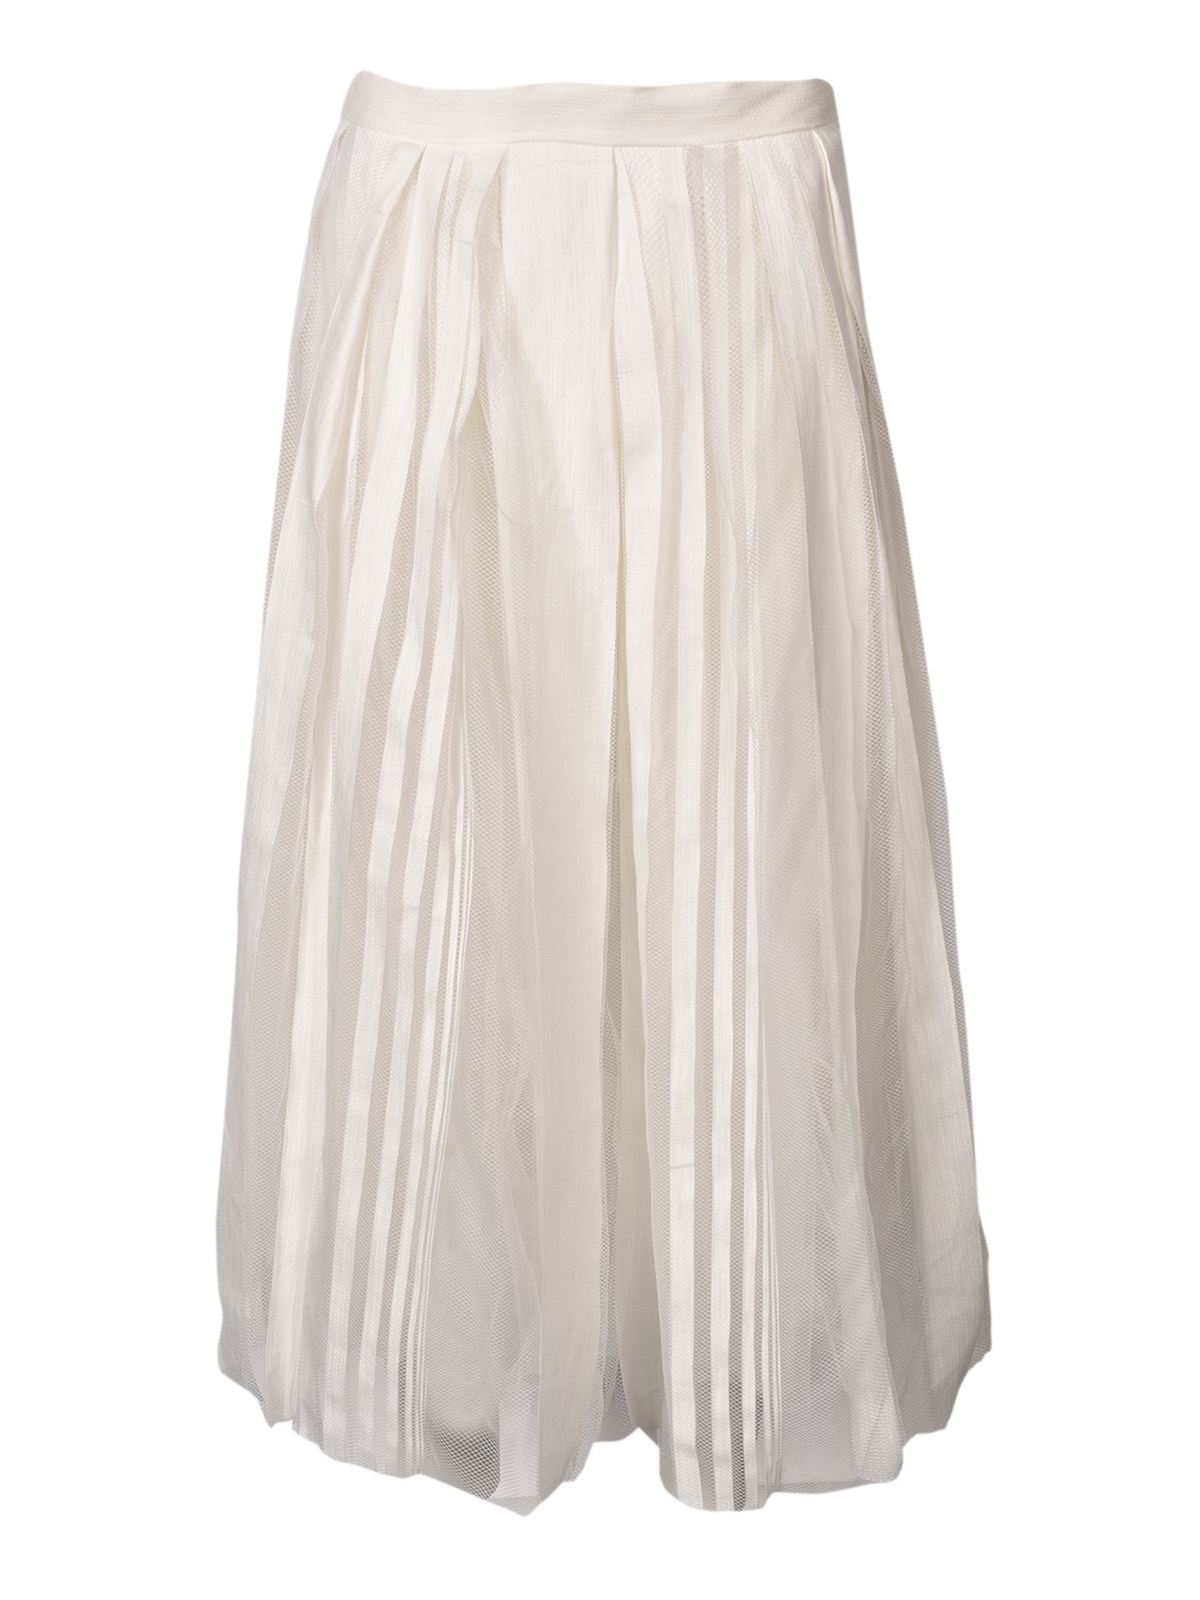 Fabiana Filippi TULLE SKIRT IN WHITE